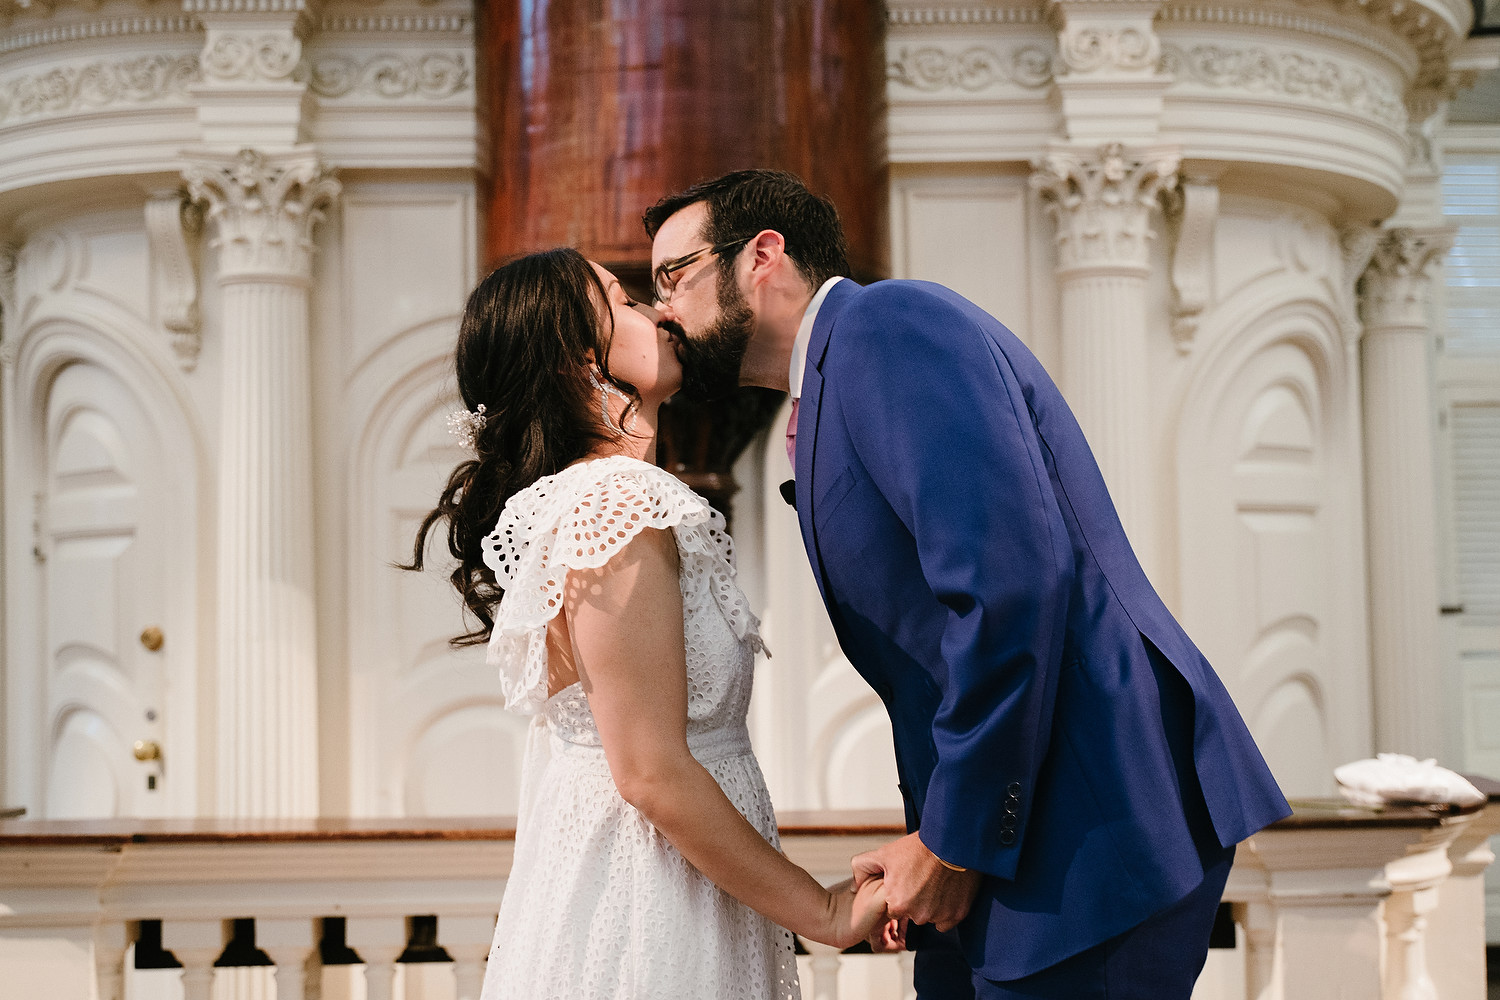 Boston Old South Meeting House wedding photo session 17